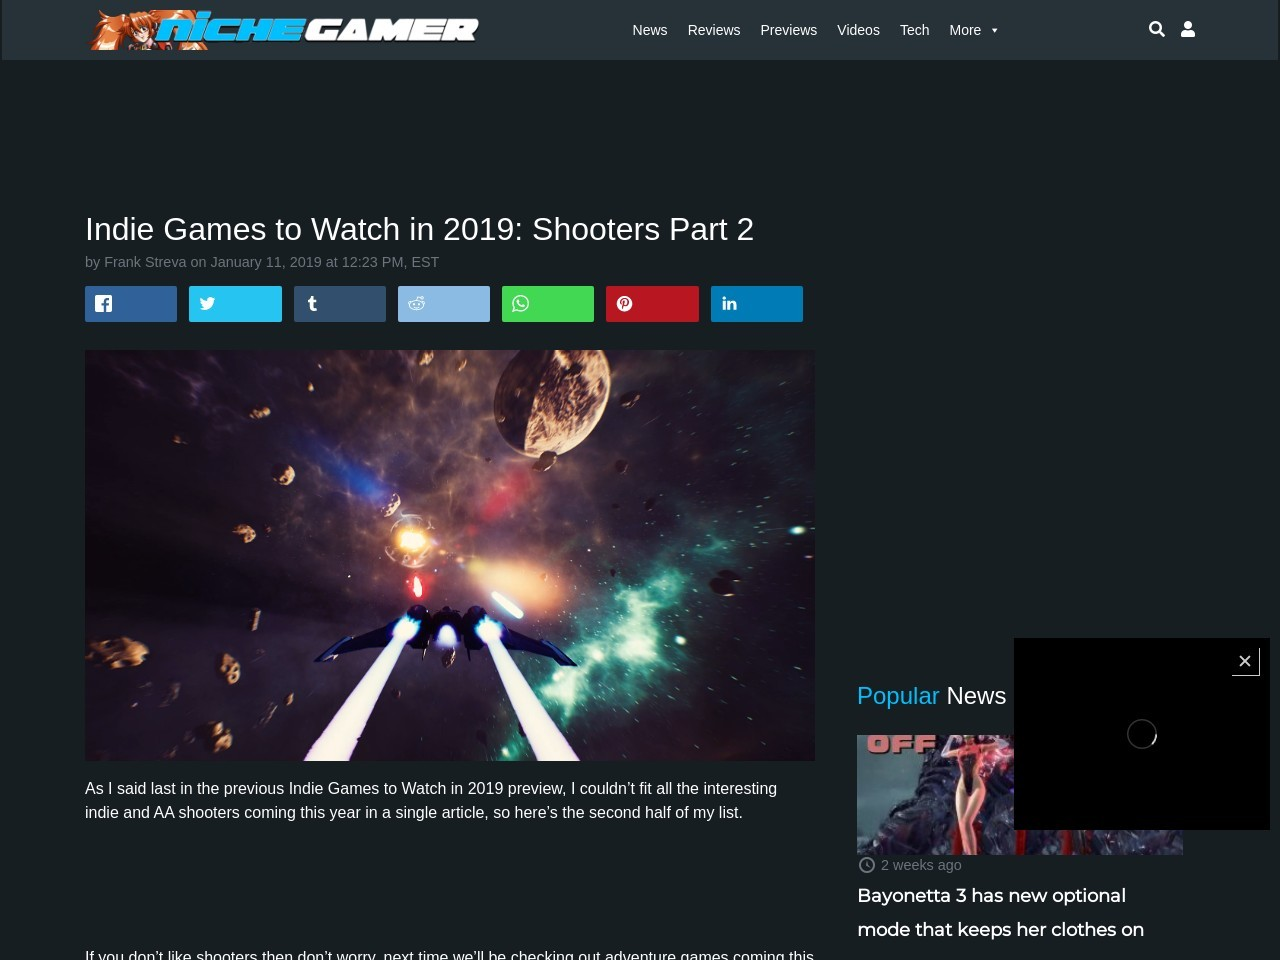 Indie Games to Watch in 2019: Shooters Part 2